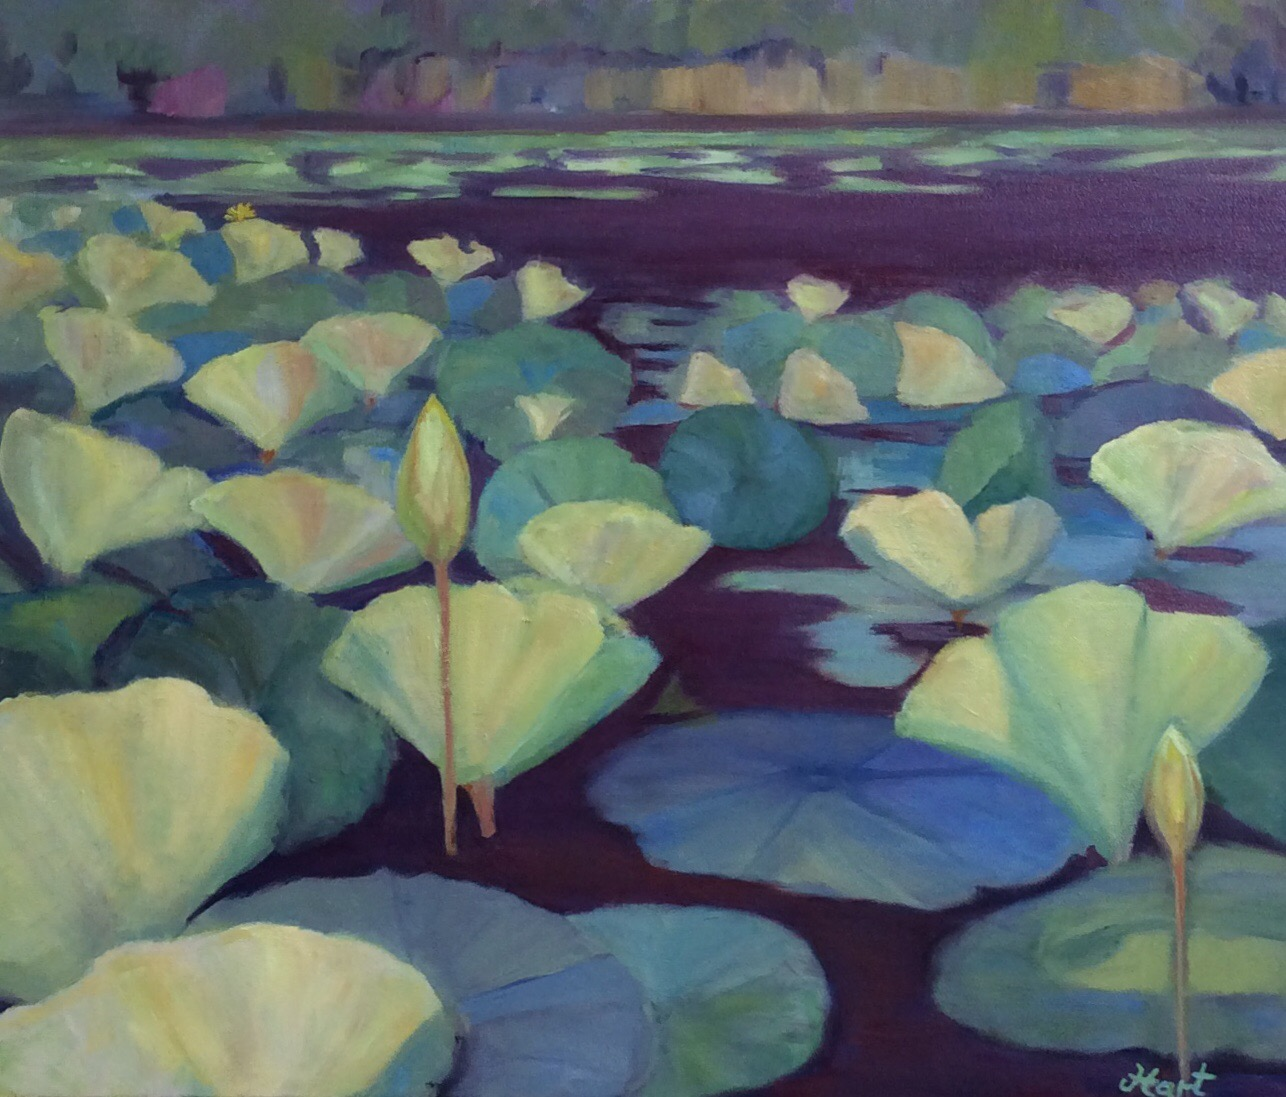 Painting inspired by Turners Creek, Kent County